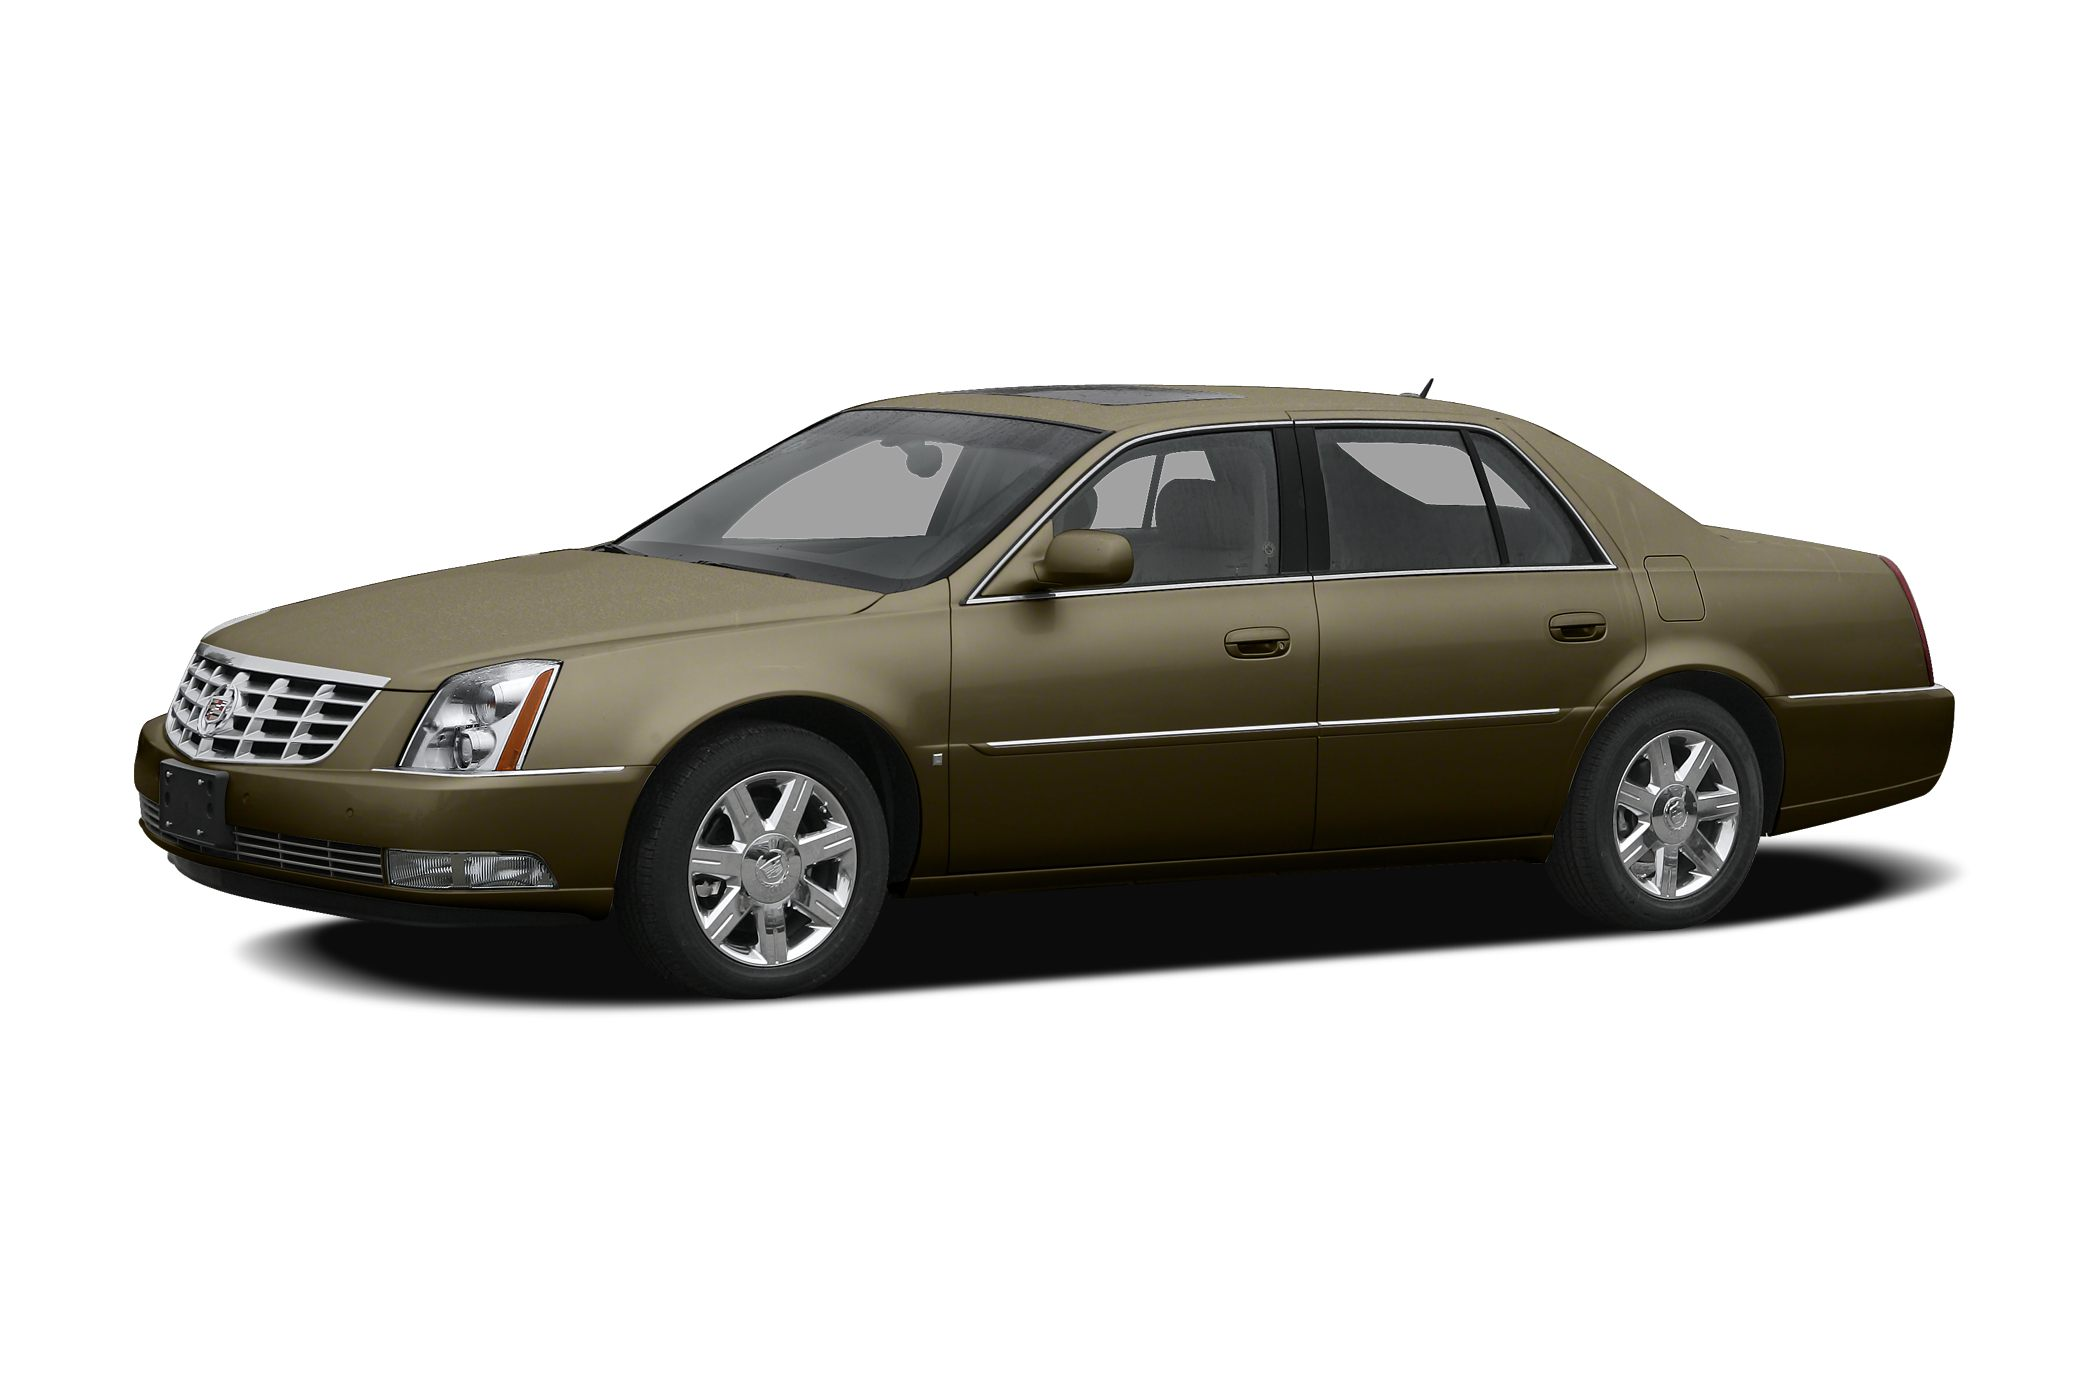 2010 Cadillac DTS Platinum Collection Sedan for sale in Columbia for $16,995 with 83,278 miles